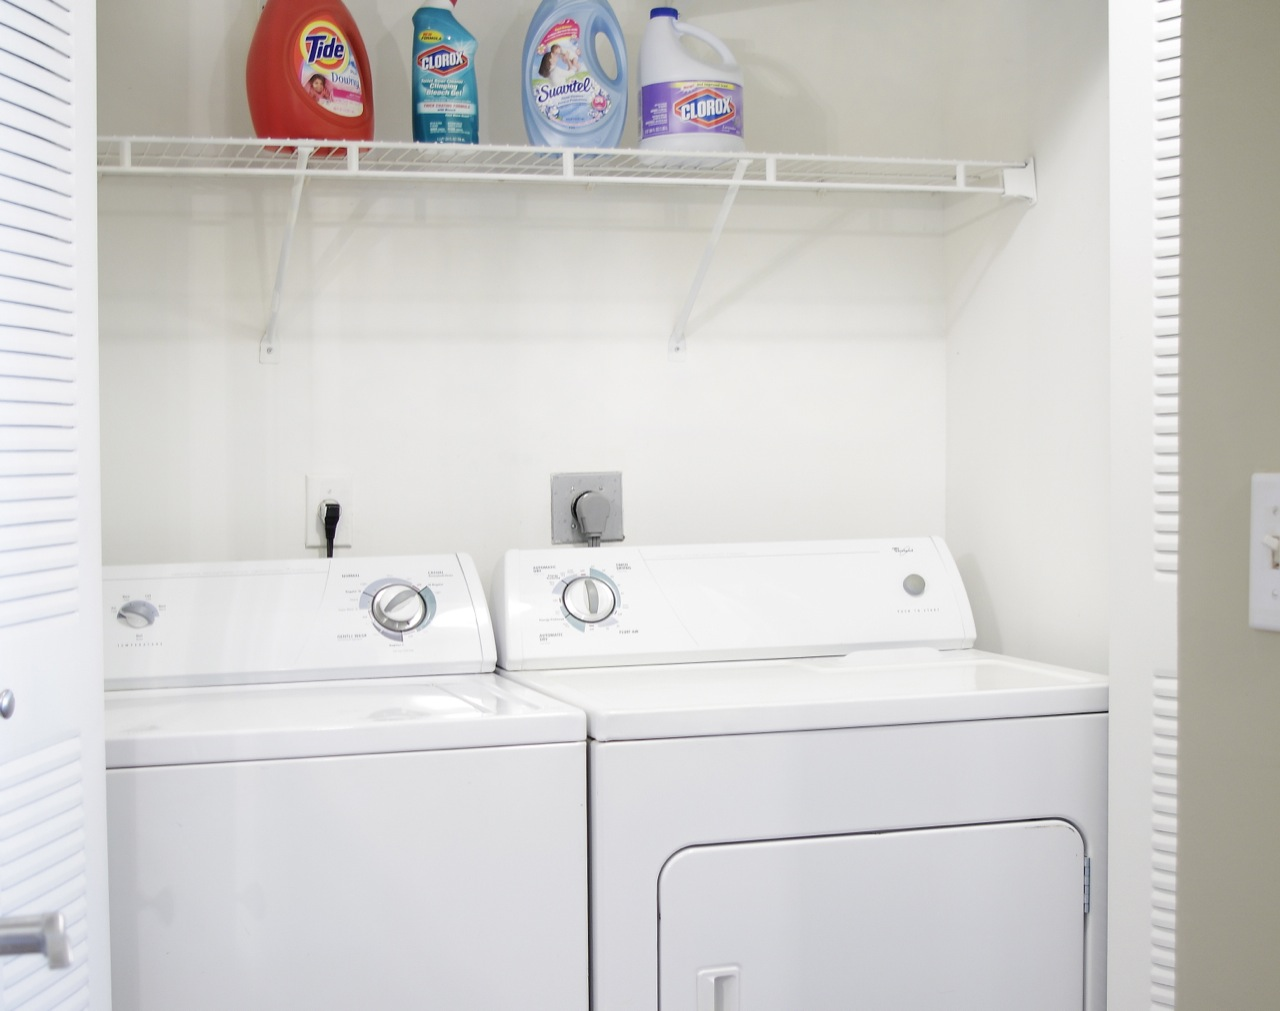 In-unit washer and dryer machines located inside of double-door closet. Overhead wire shelving holding laundry detergents